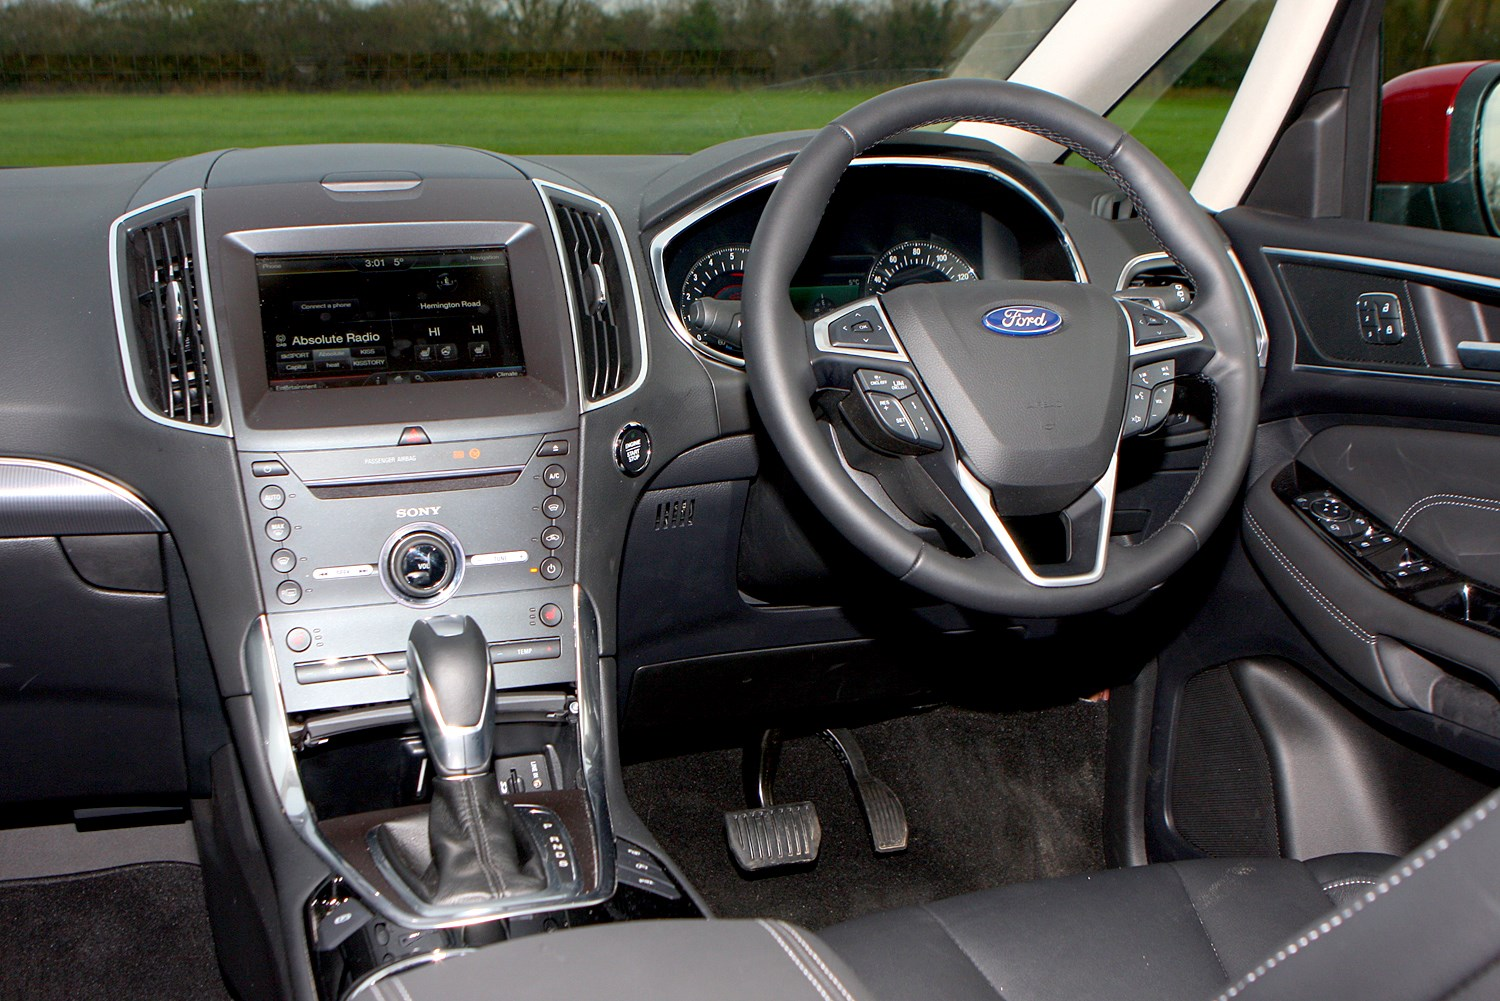 Ford C Maxs >> Ford S-MAX Estate (2015 - ) Features, Equipment and Accessories | Parkers